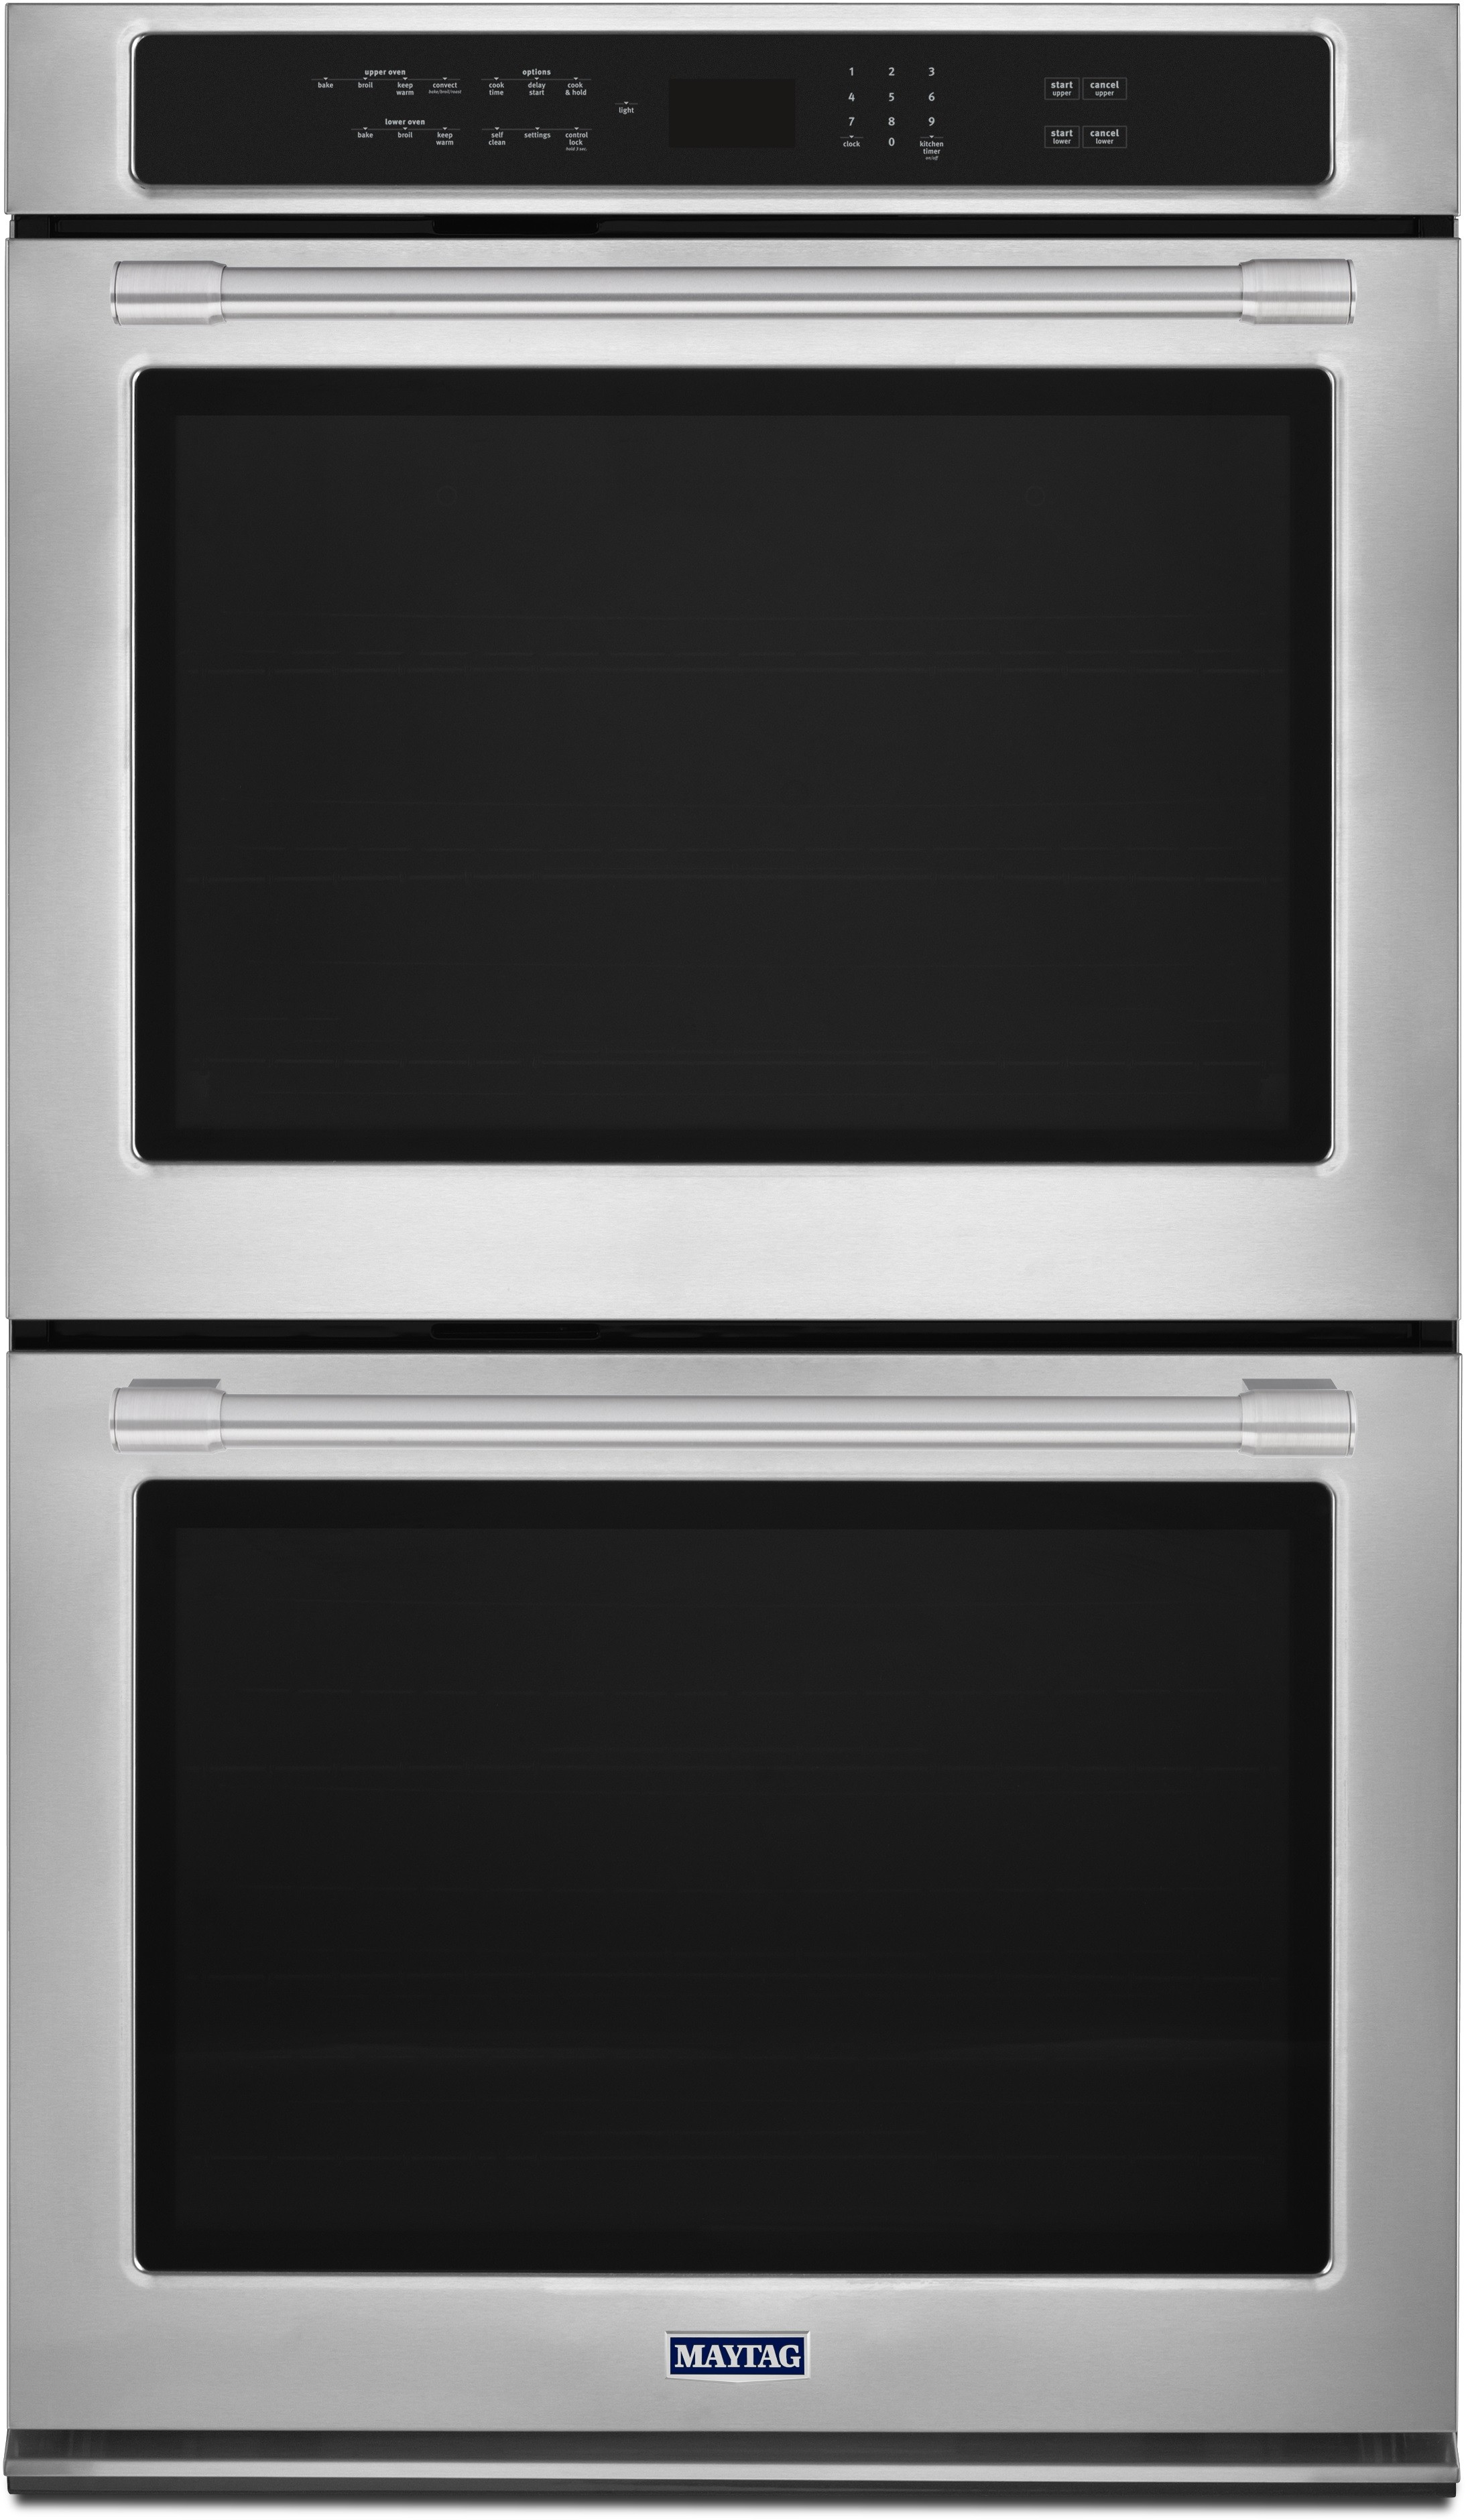 Maytag Mew9627fz 27 Inch Double Electric Wall Oven With 8